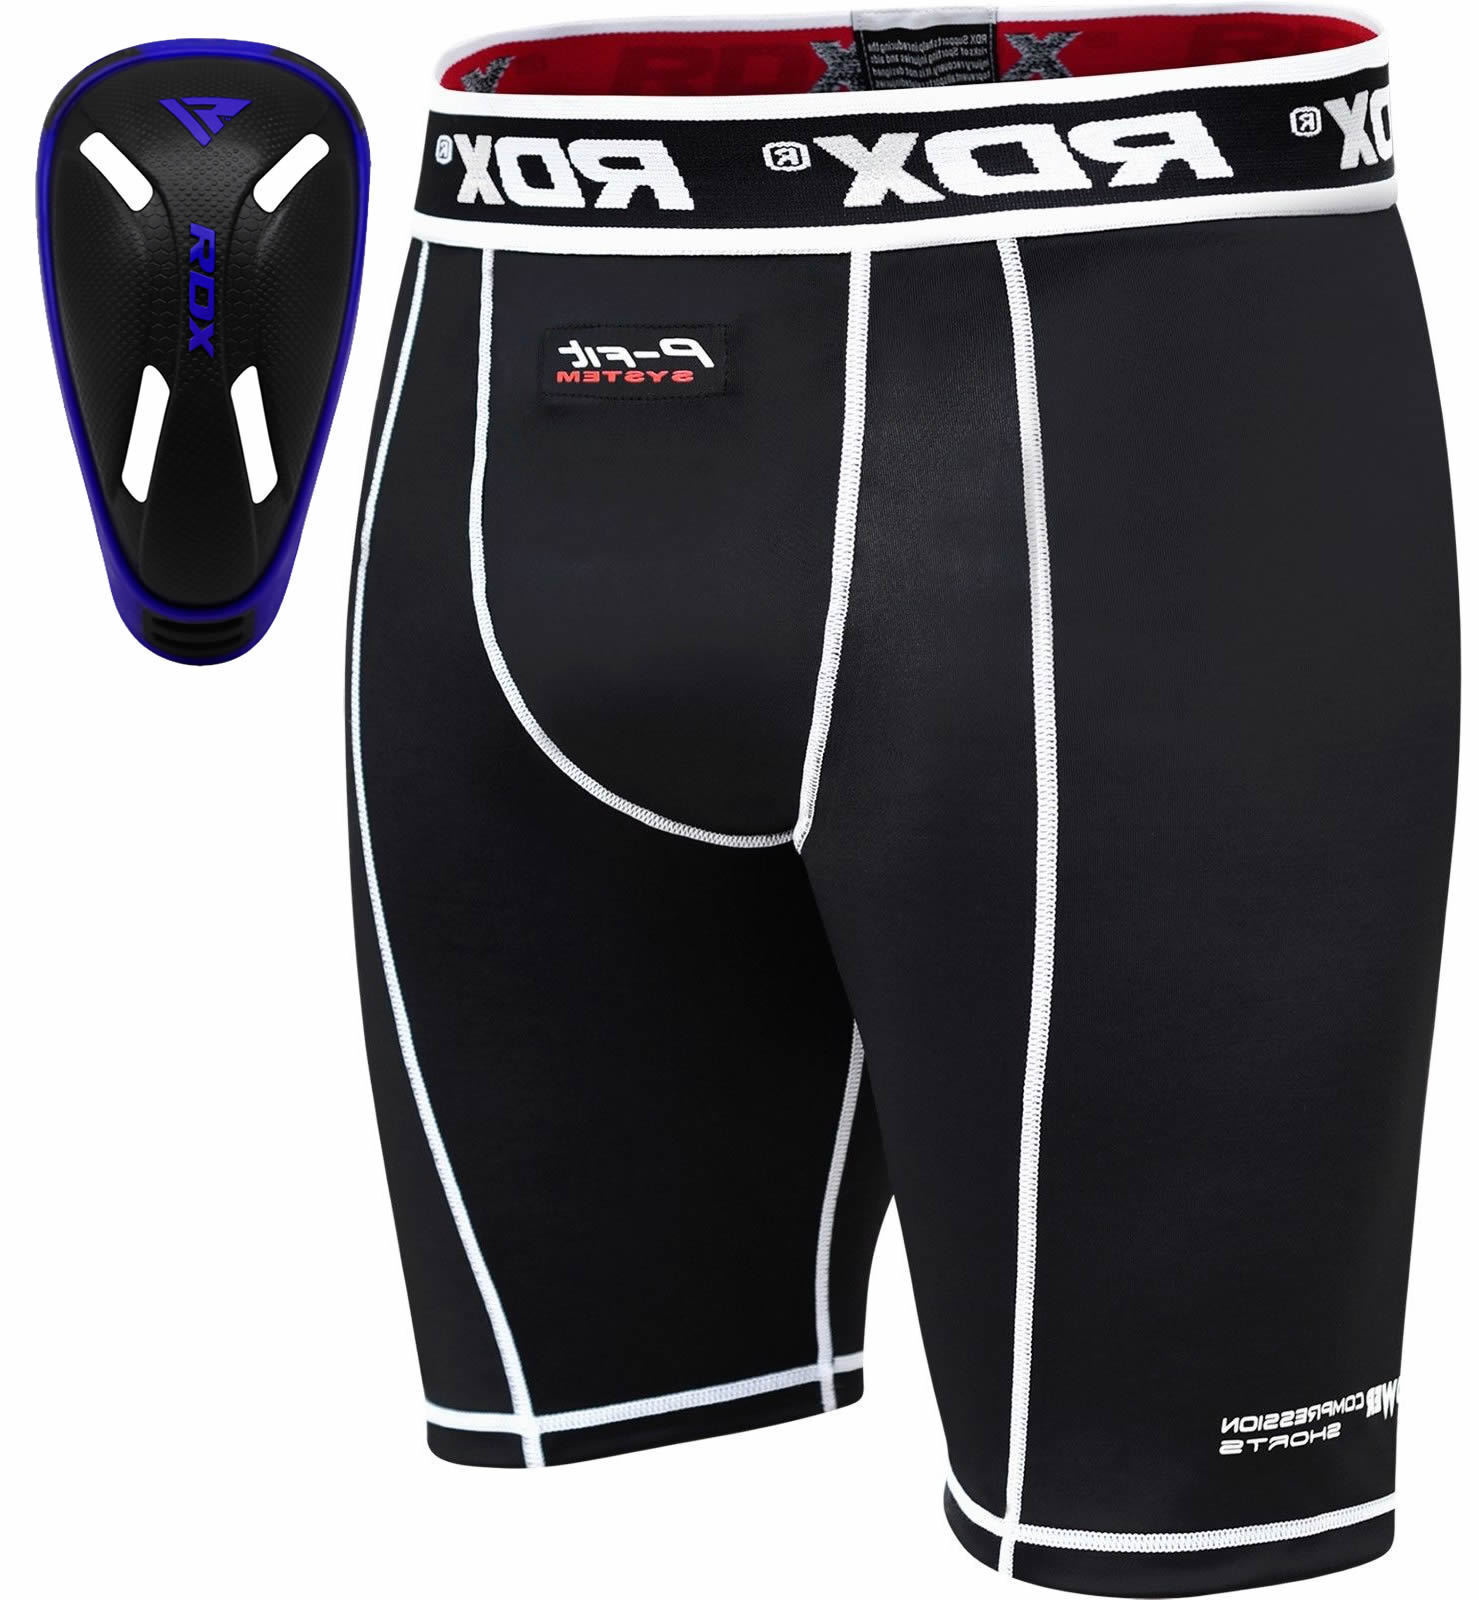 RDX Homme Short De Compression Cuissard Tight Running Boxer Boxer Boxer Coquille Martiaux FR 5acb27